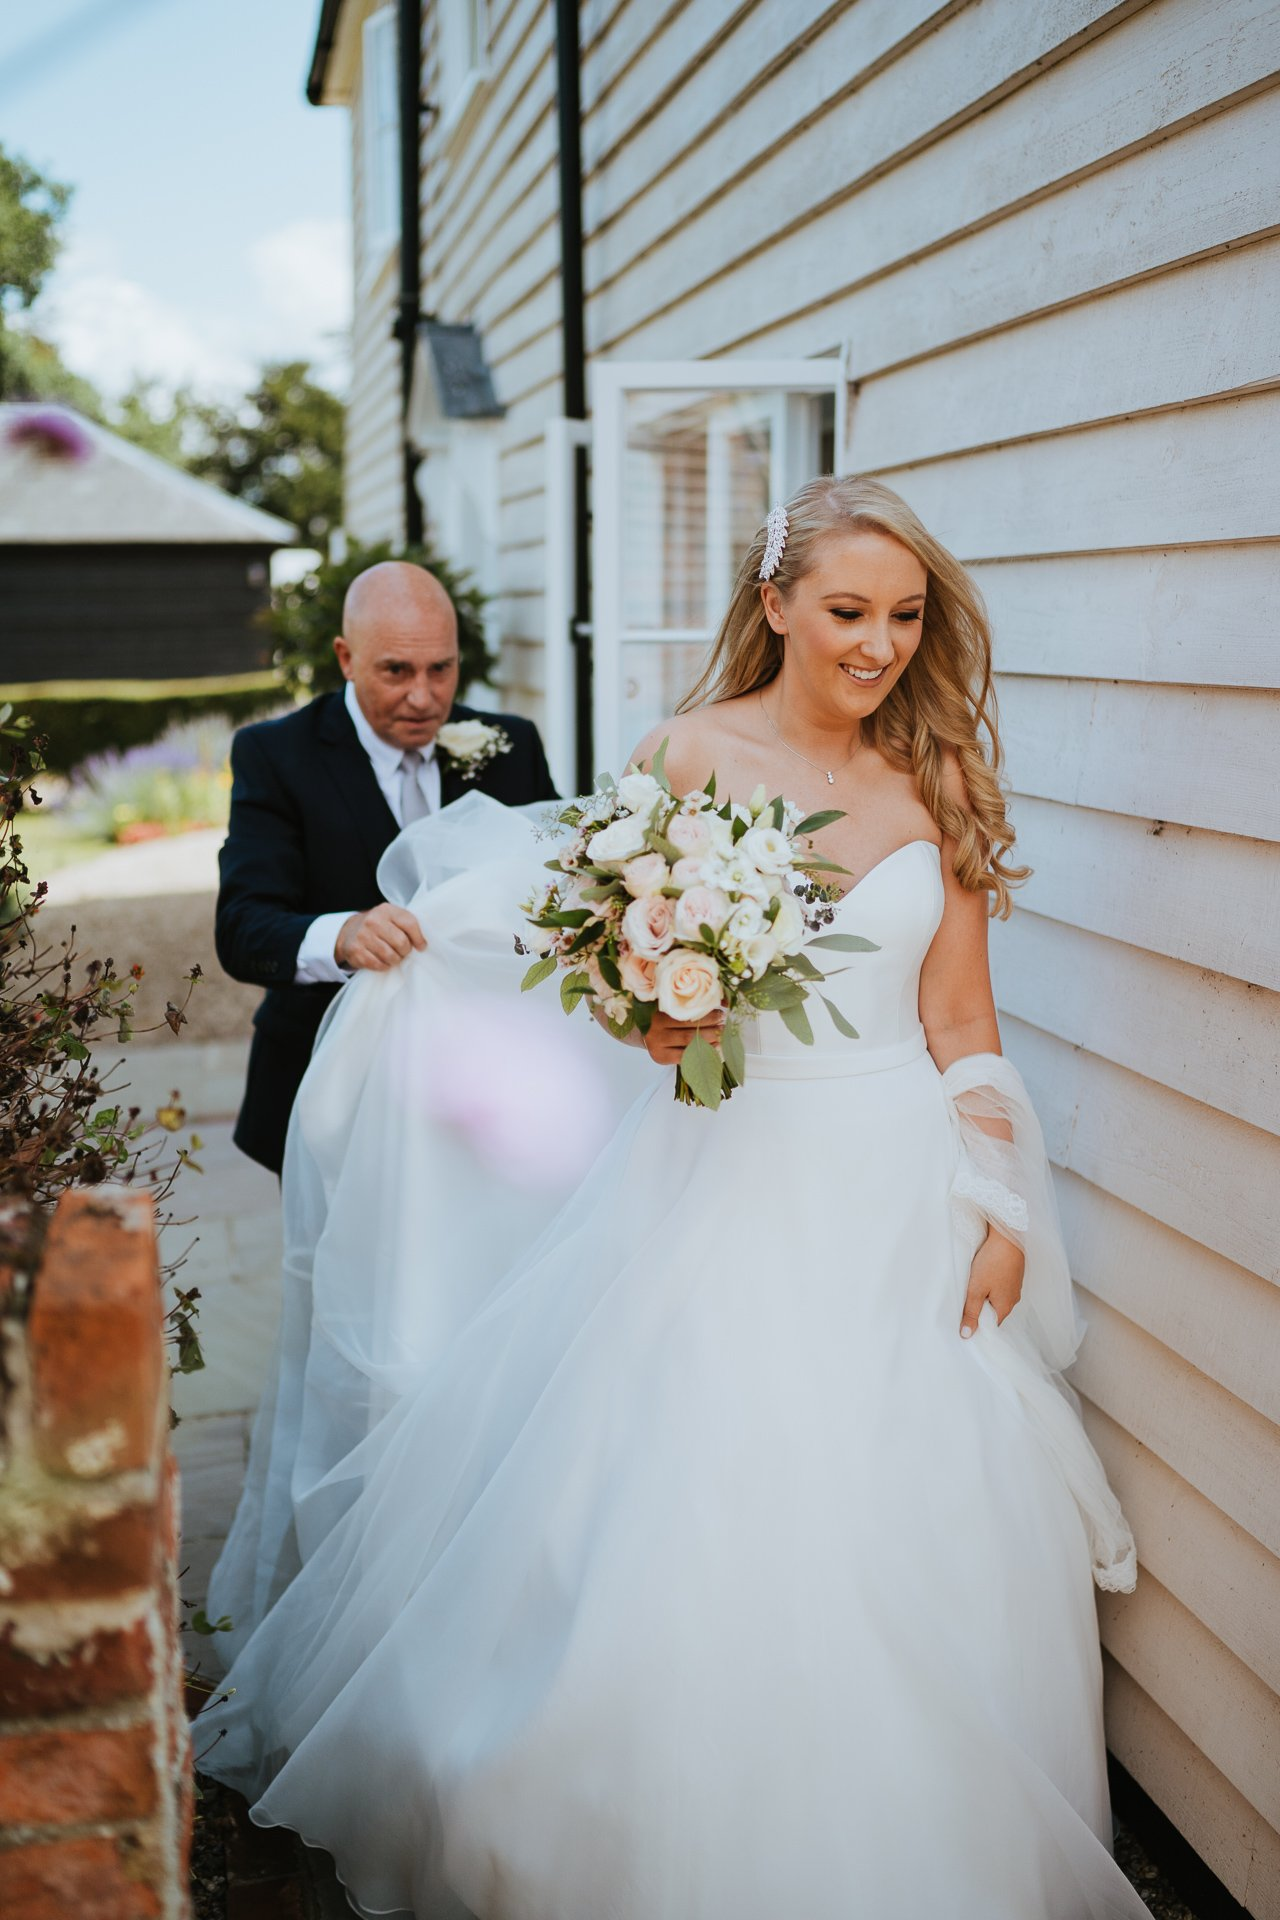 Brides father holding her dress for her as she walks to the ceremony